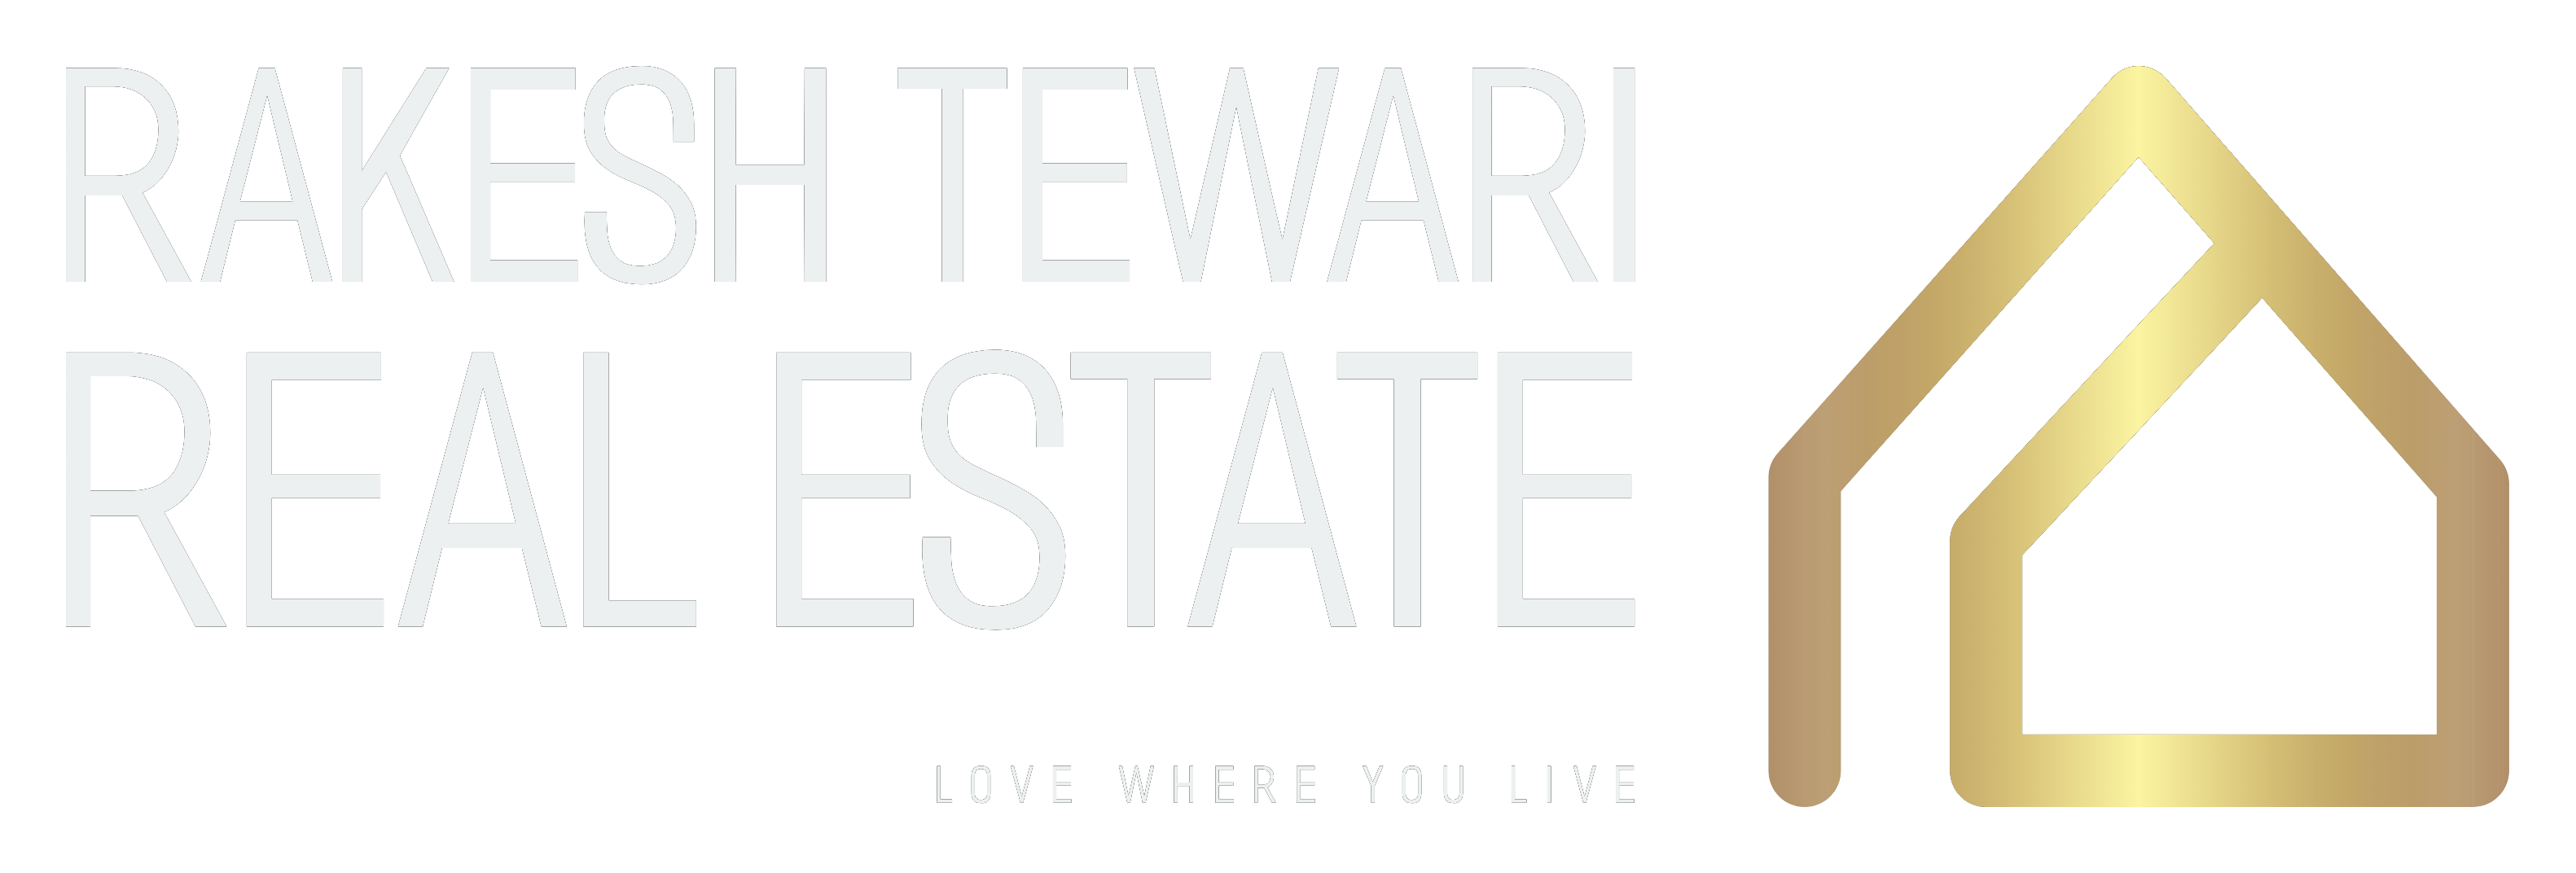 Homes For Sale | Rakesh Tewari Real Estate